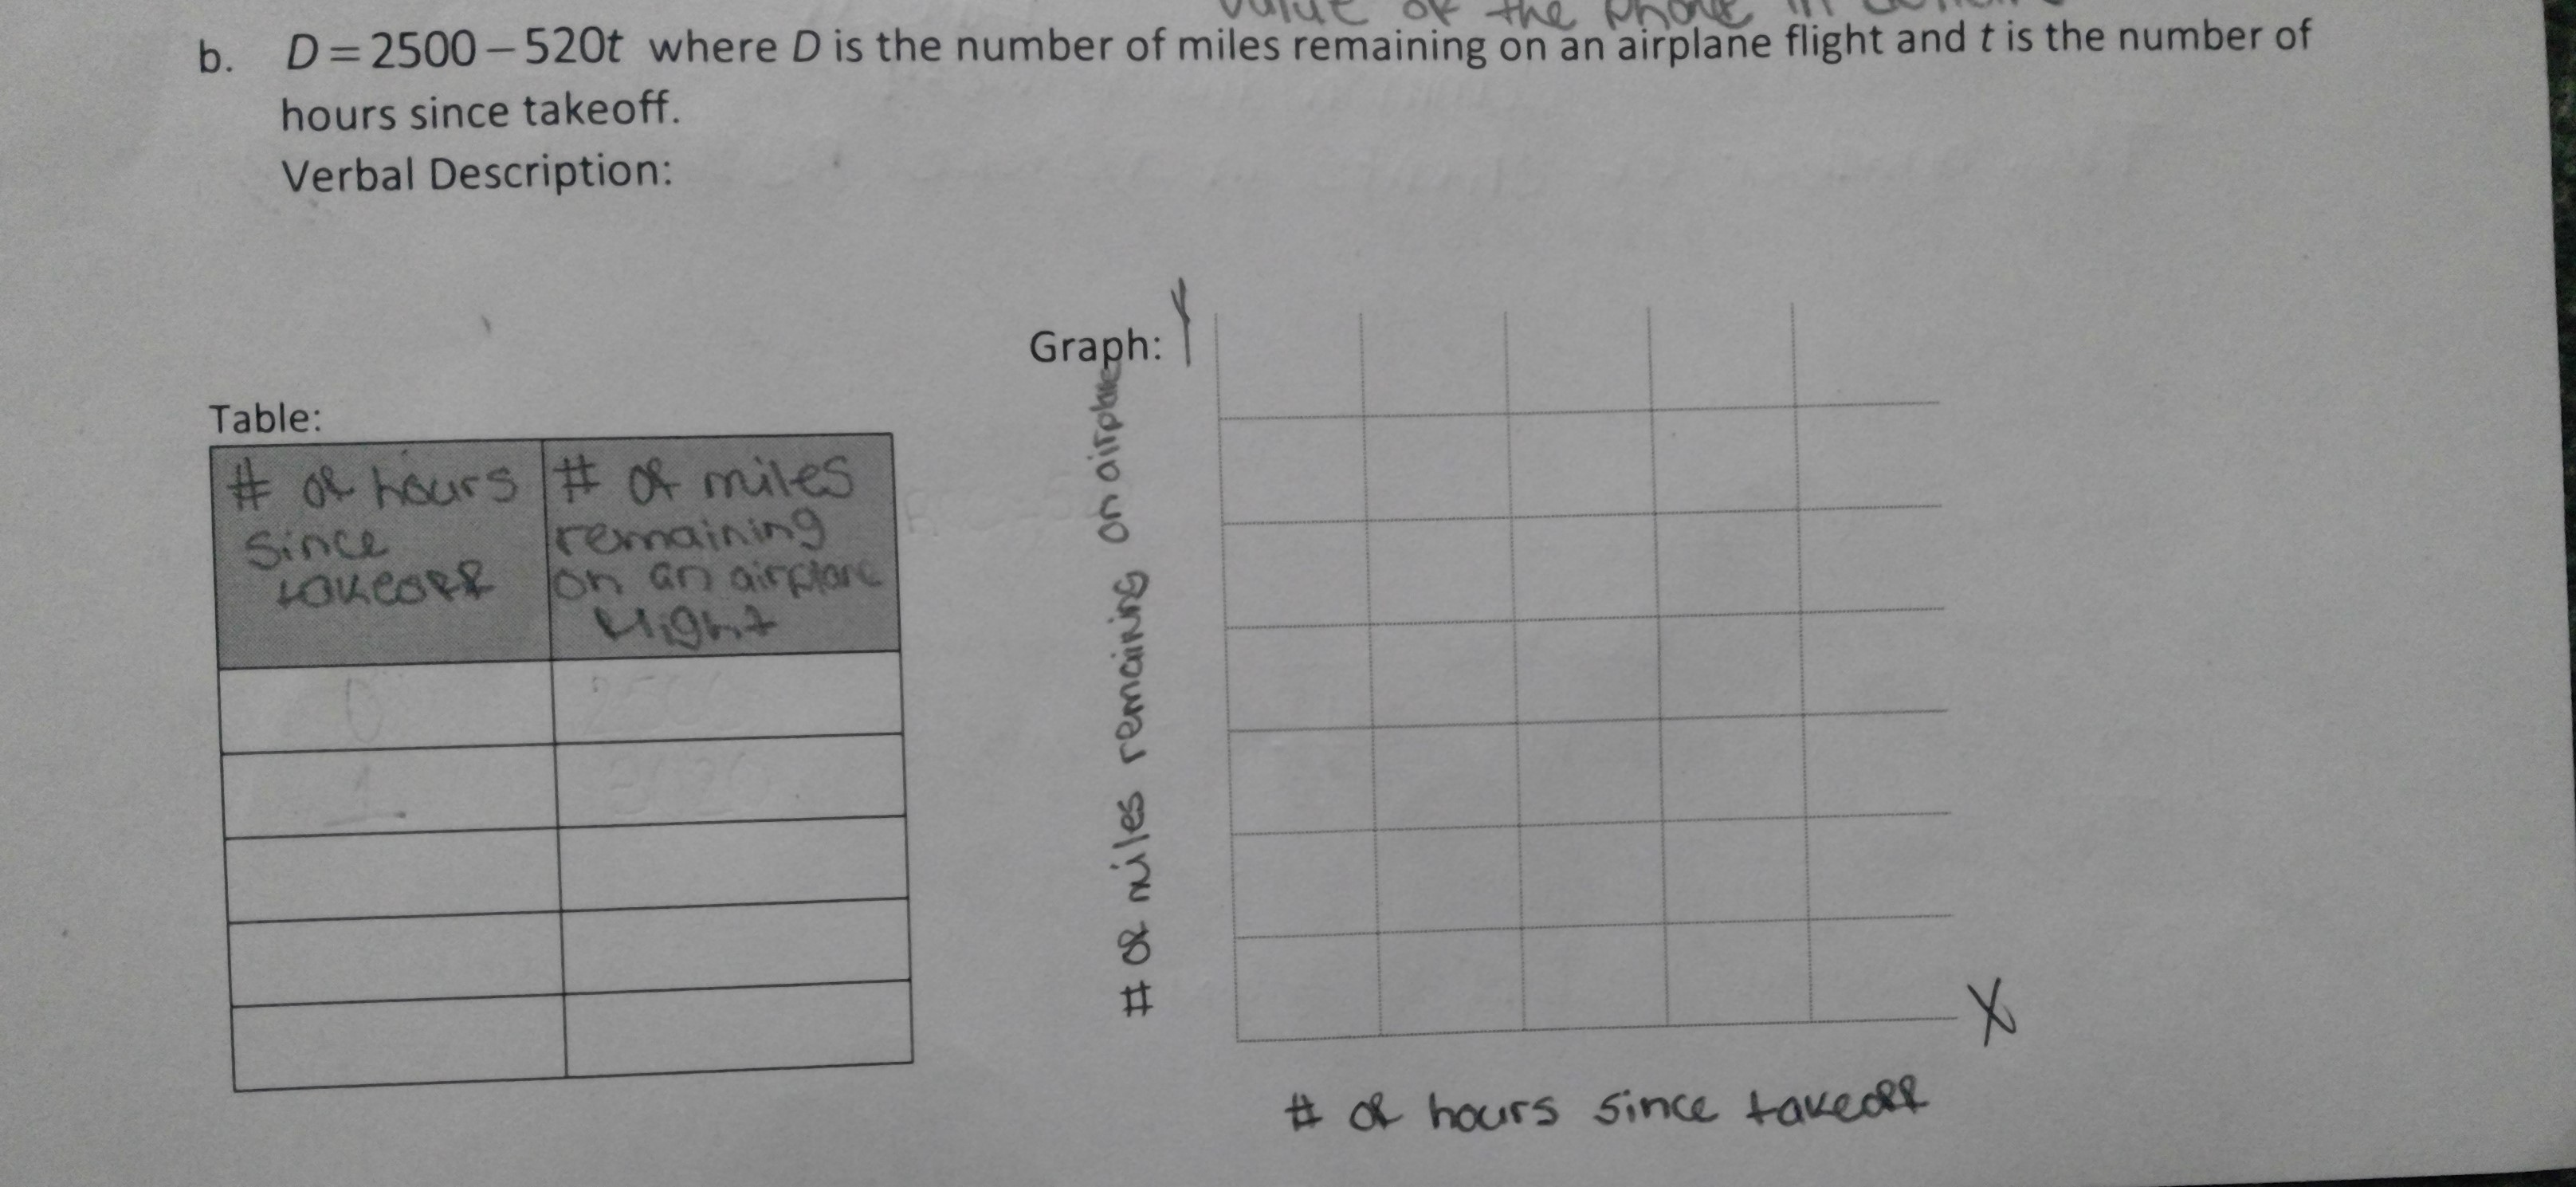 b. D=2500-520t where D is the number of miles remaining on an airplane flight and t is the number of hours since ta ke off. Verbal Description: Graph: Table: # o hours # o mites Since LOueseR remaining Ught #& hours 5ince tavedY #R miles remaining on airph